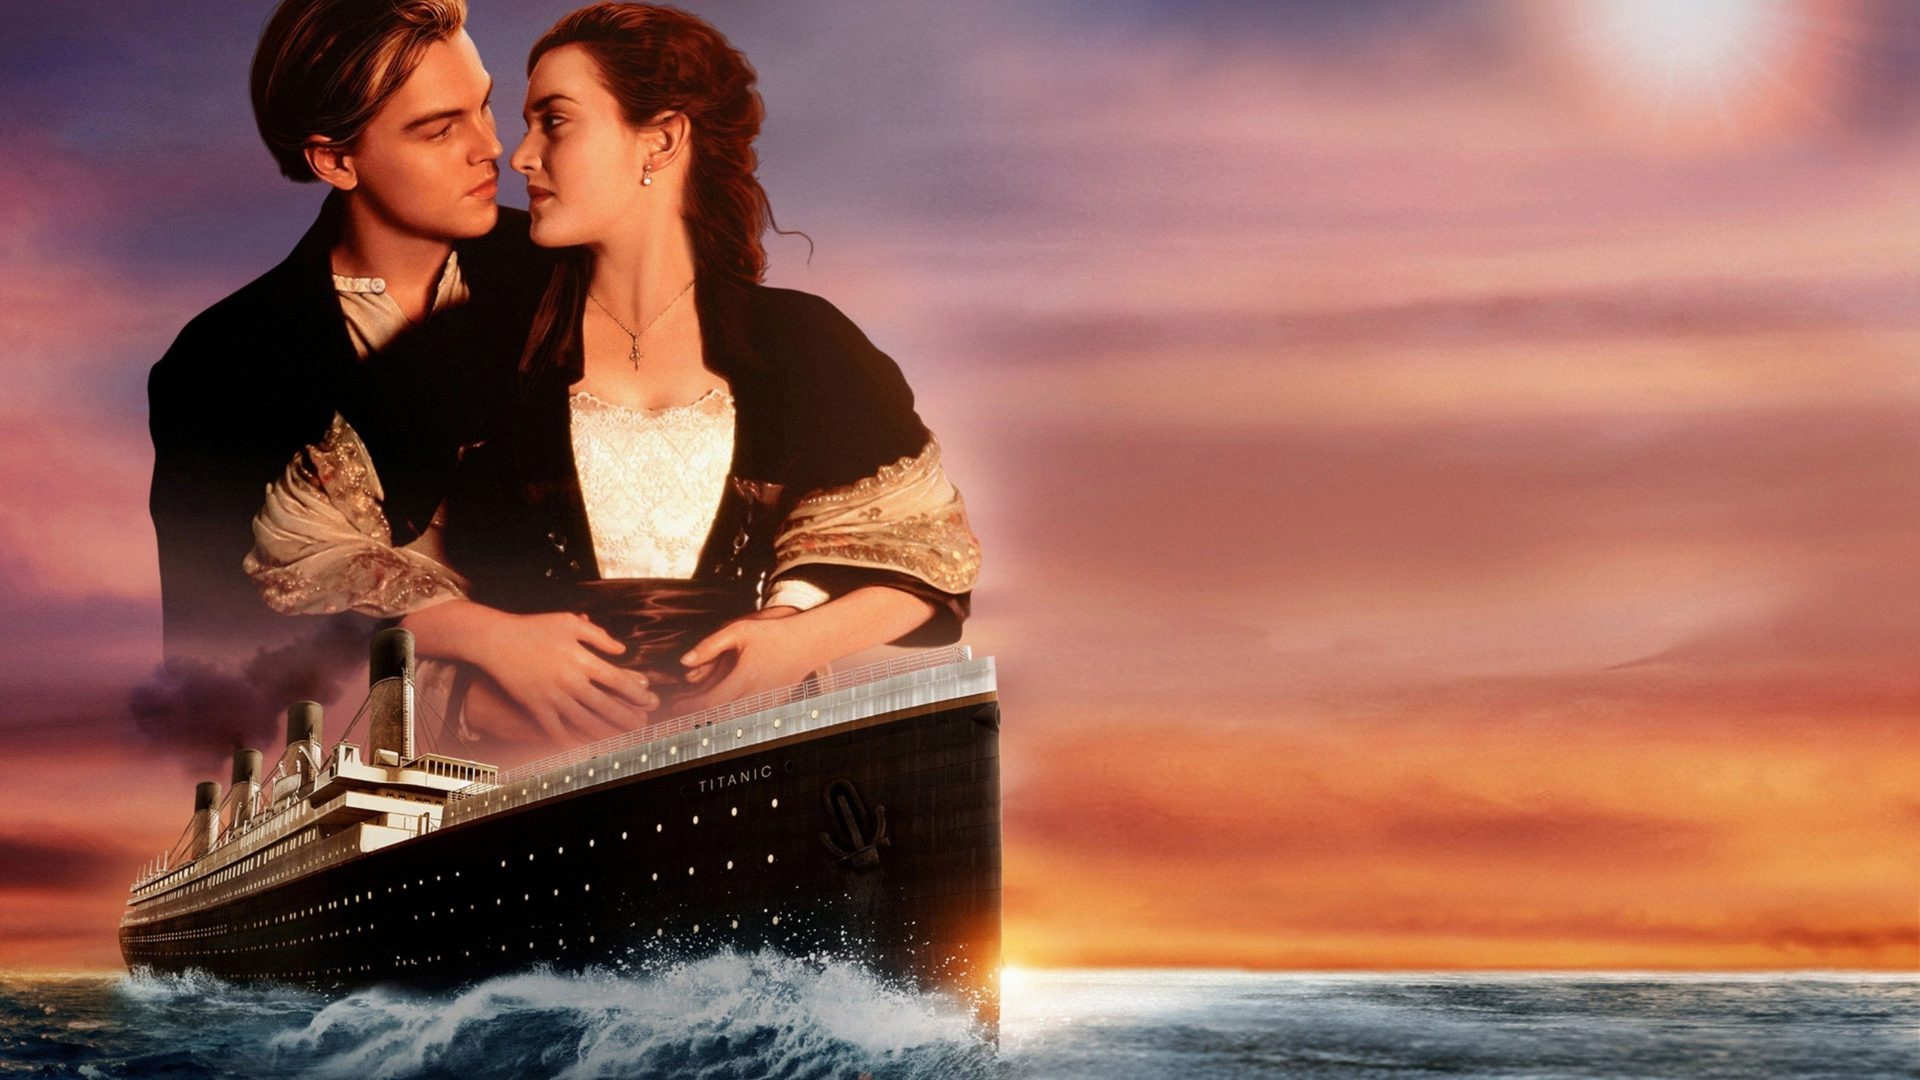 Iphone Wallpaper Quote Pink Couple Dawson Dicaprio Jack Kate Leonardo Love Rose Ship